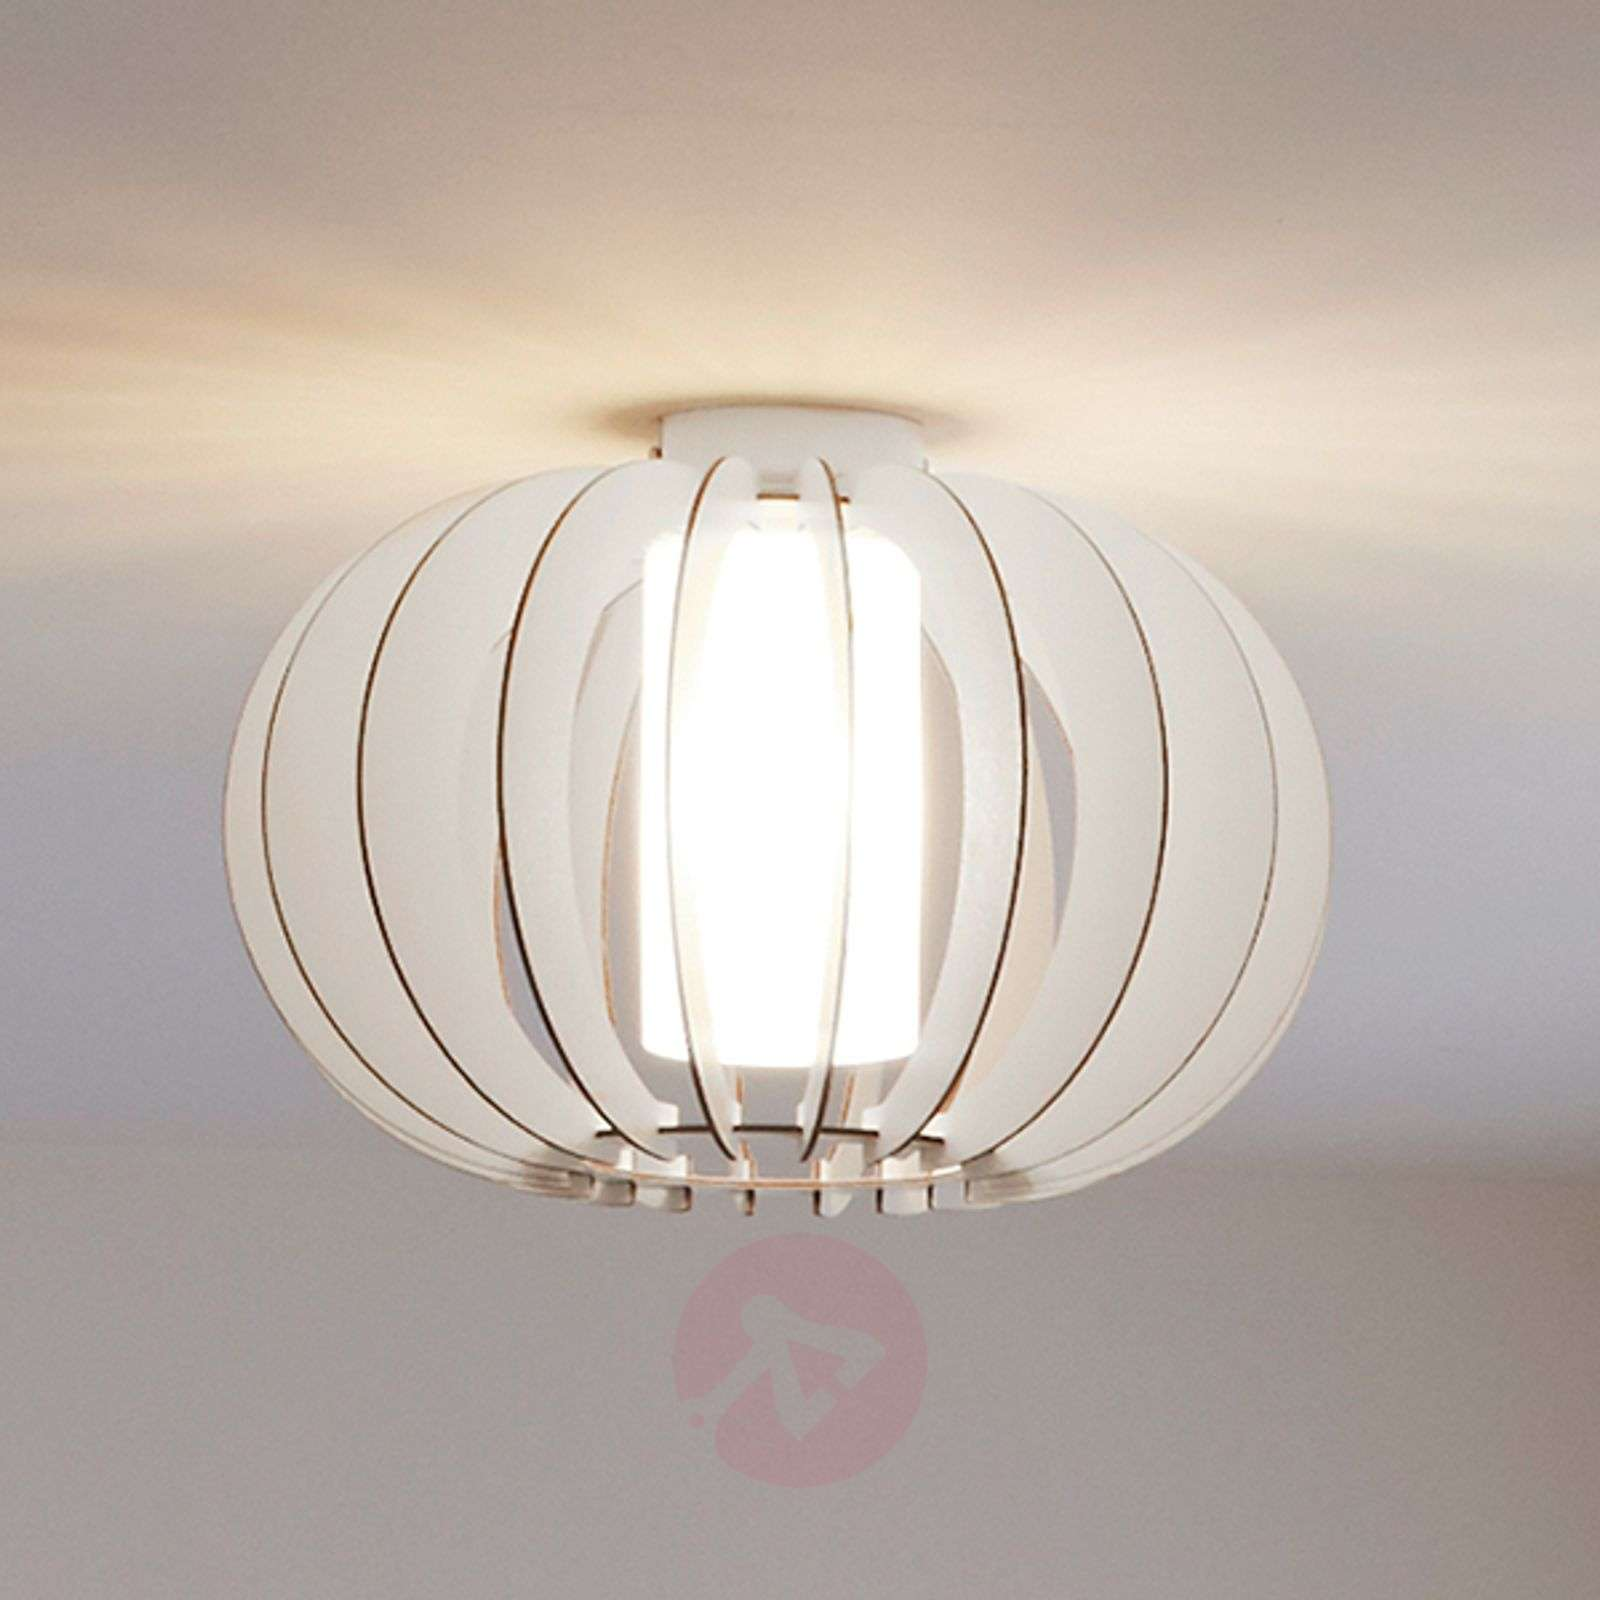 White Ceiling Lights: Stellato - Round Wood Ceiling Light In White